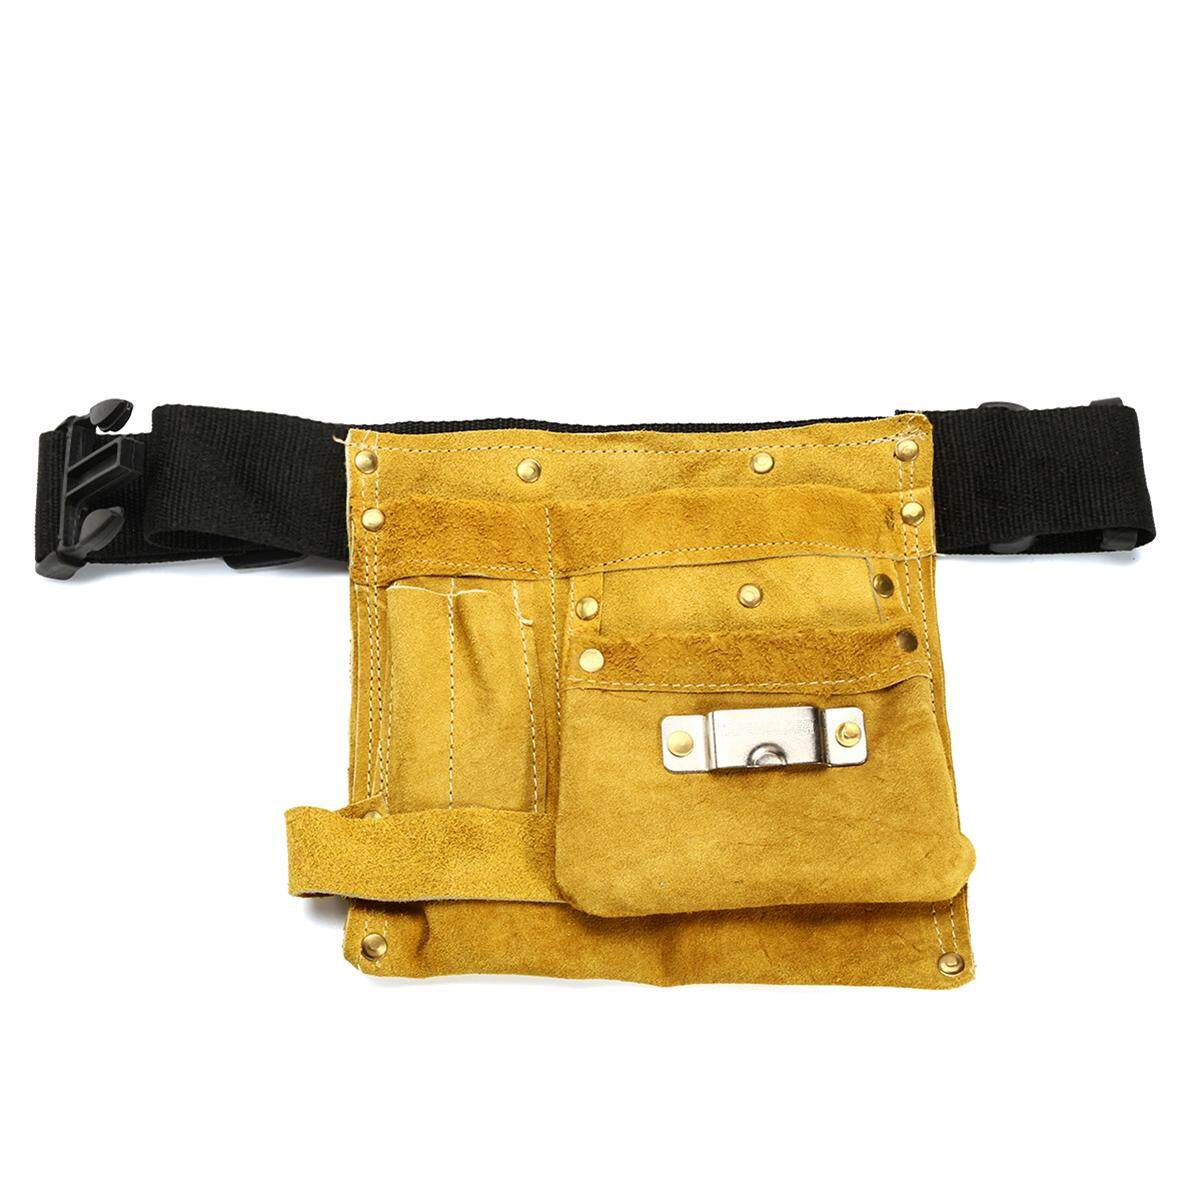 Leather Tool Belt Nail Pouch Bag Holder Apron Carpenter Electrician